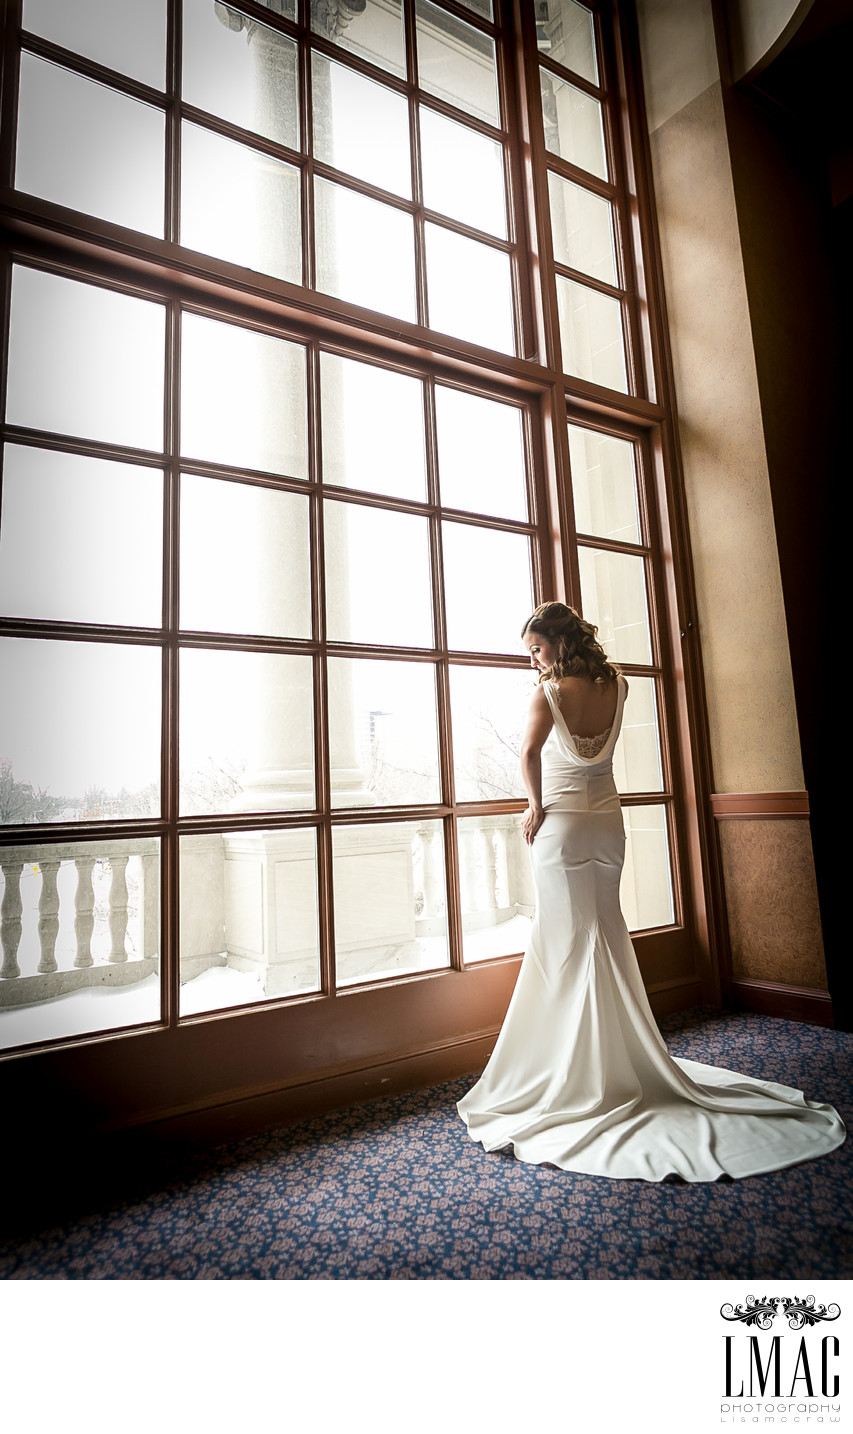 Severance is an Amazing Cleveland Wedding Photo Location